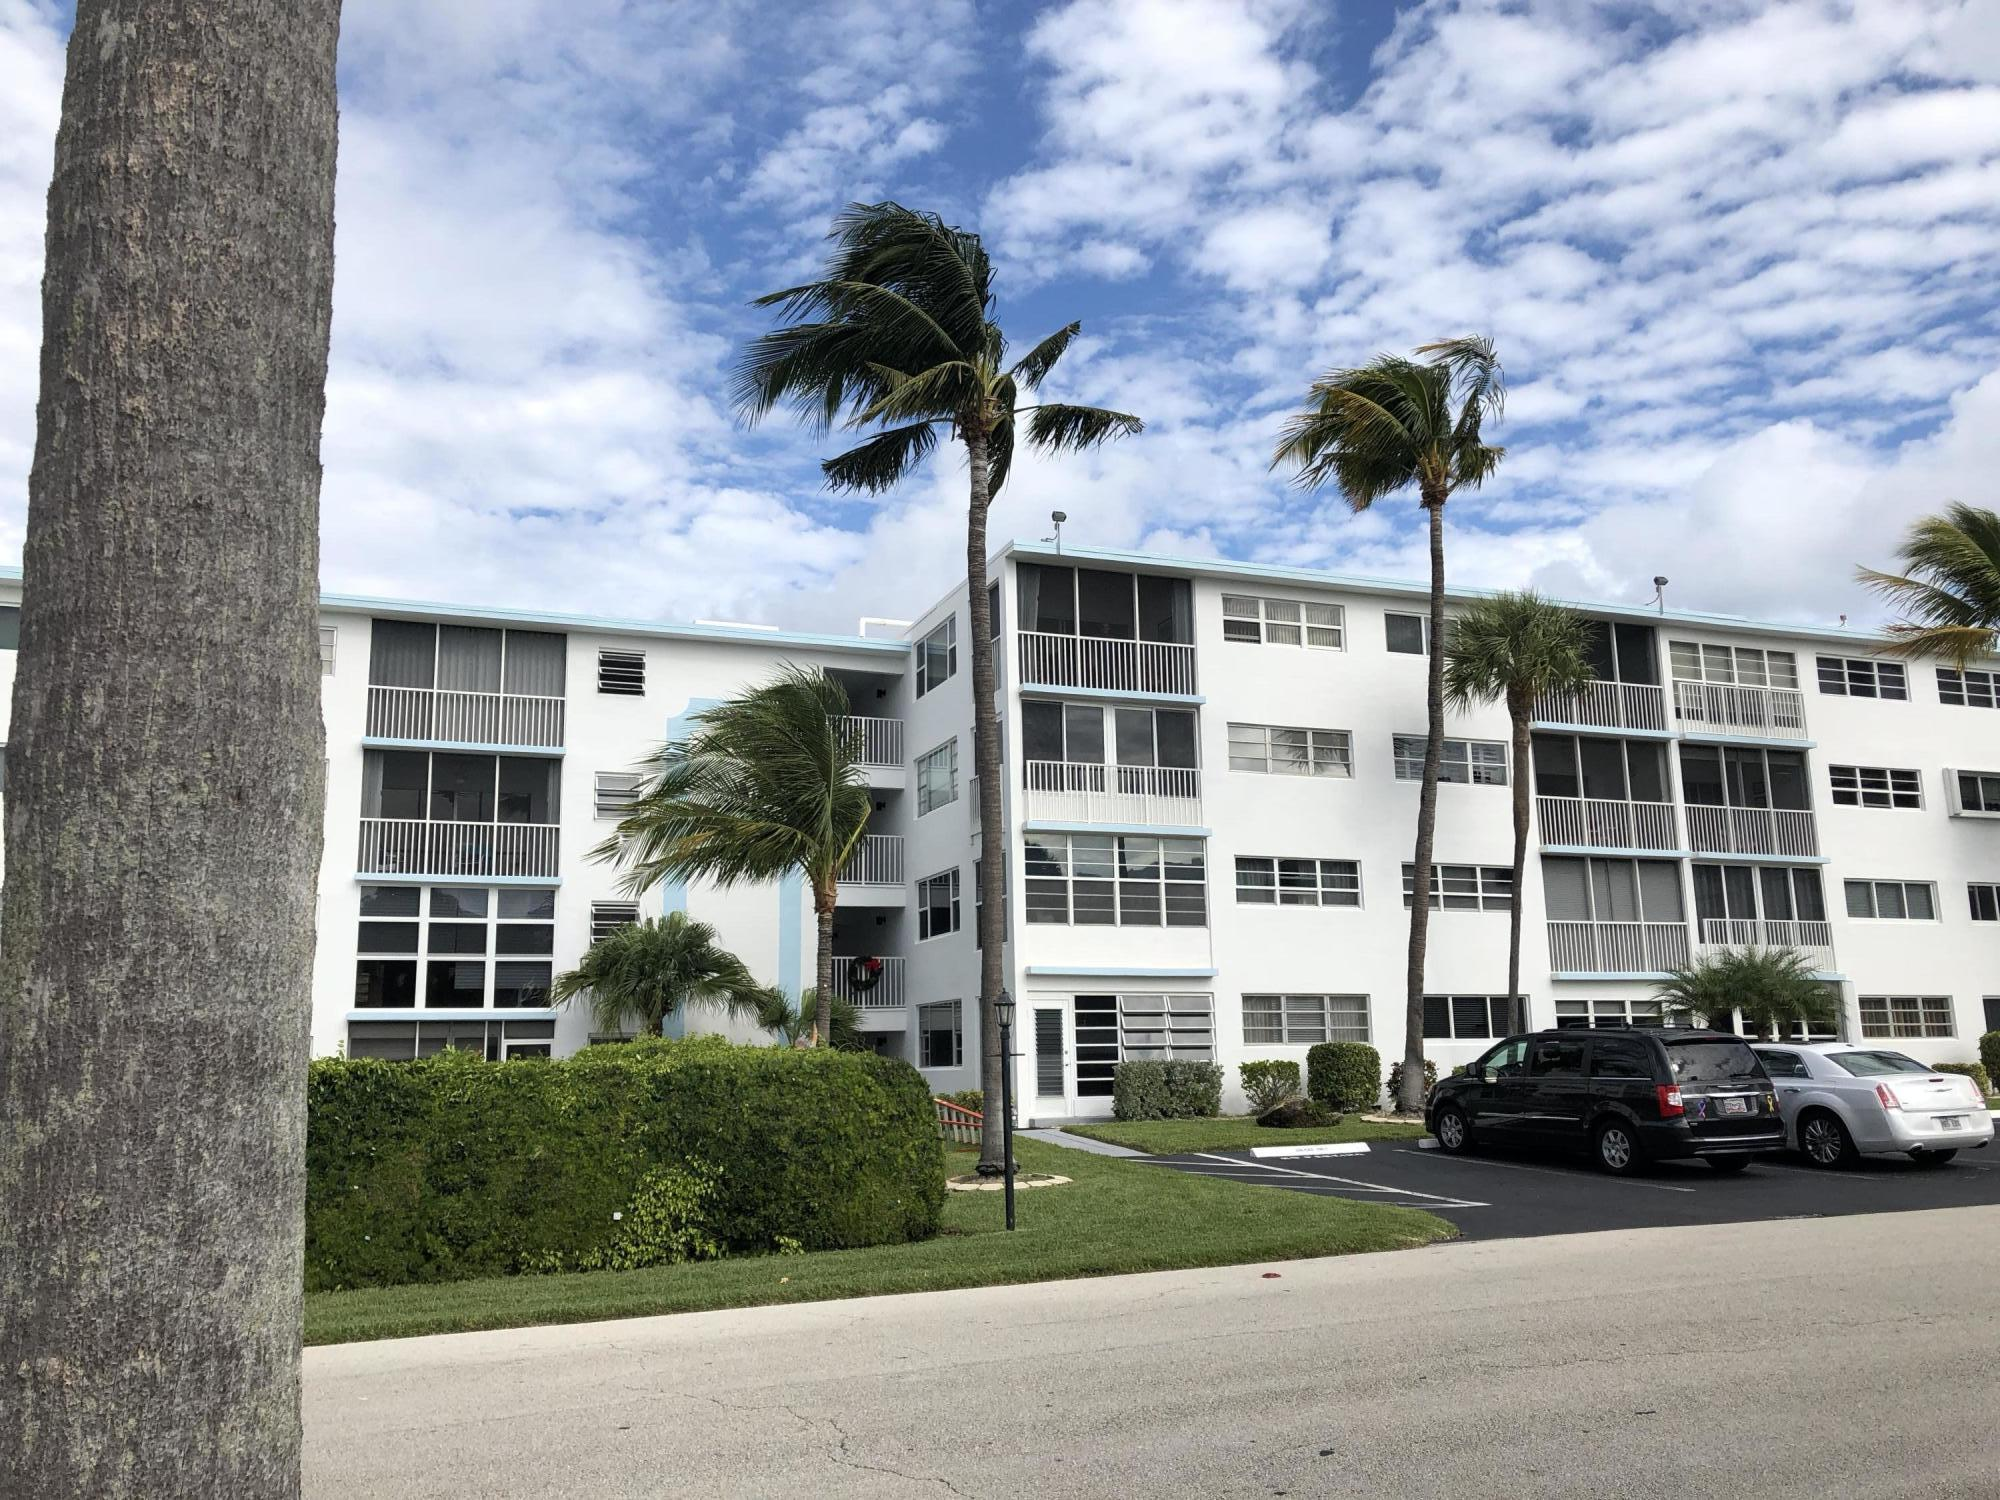 Oceanside, 3221 NE 8th Unit 401, Pompano Beach, Florida 33062